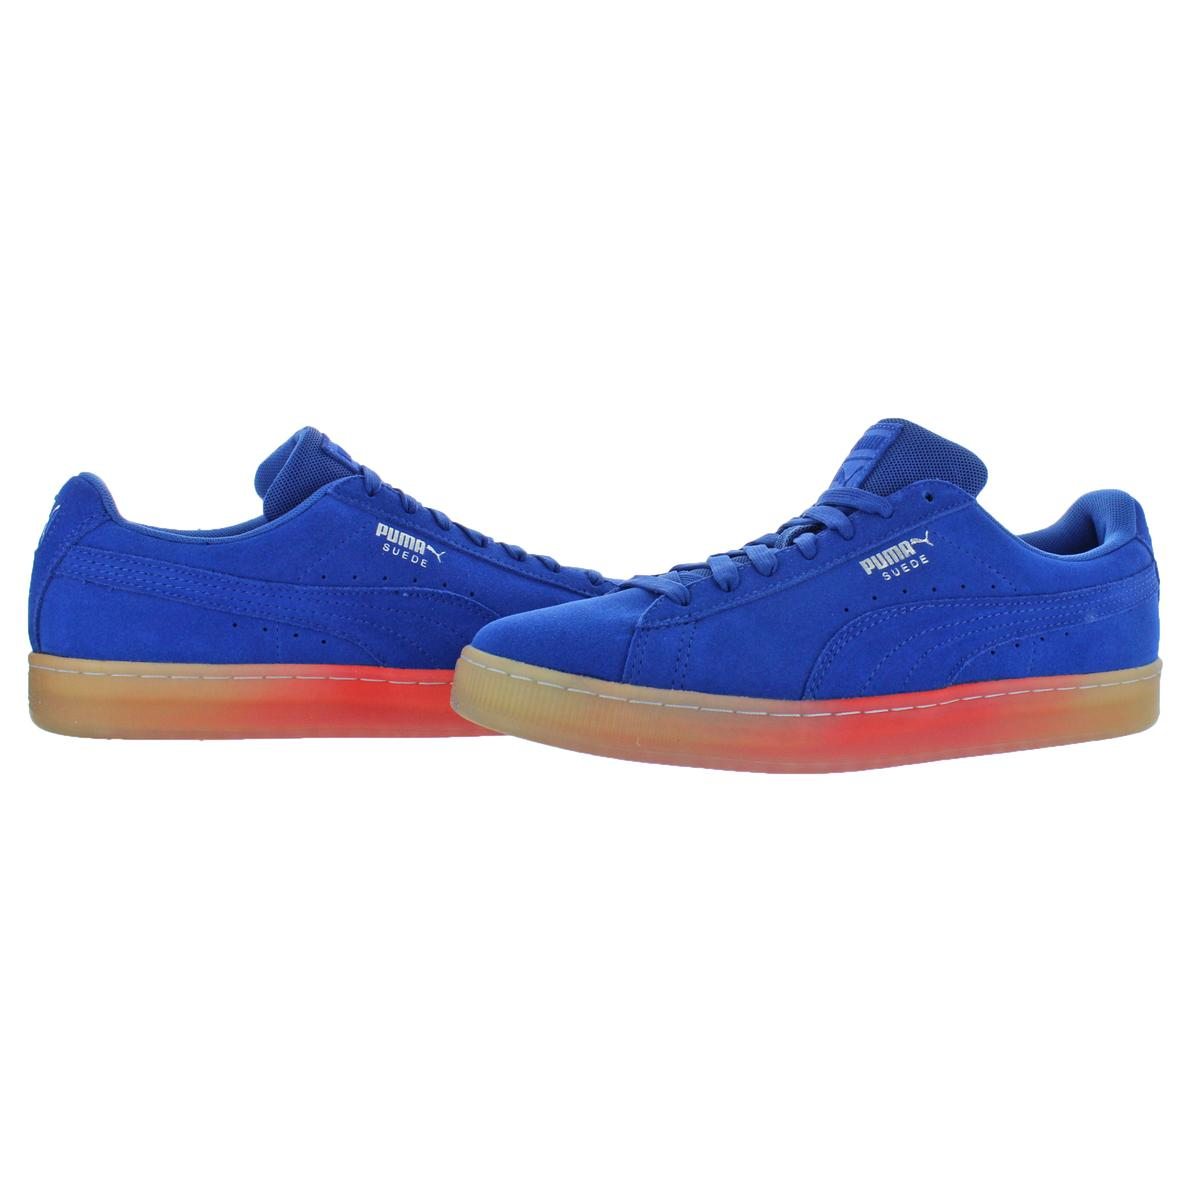 Puma-Suede-Classic-Men-039-s-Fashion-Sneakers-Shoes thumbnail 51